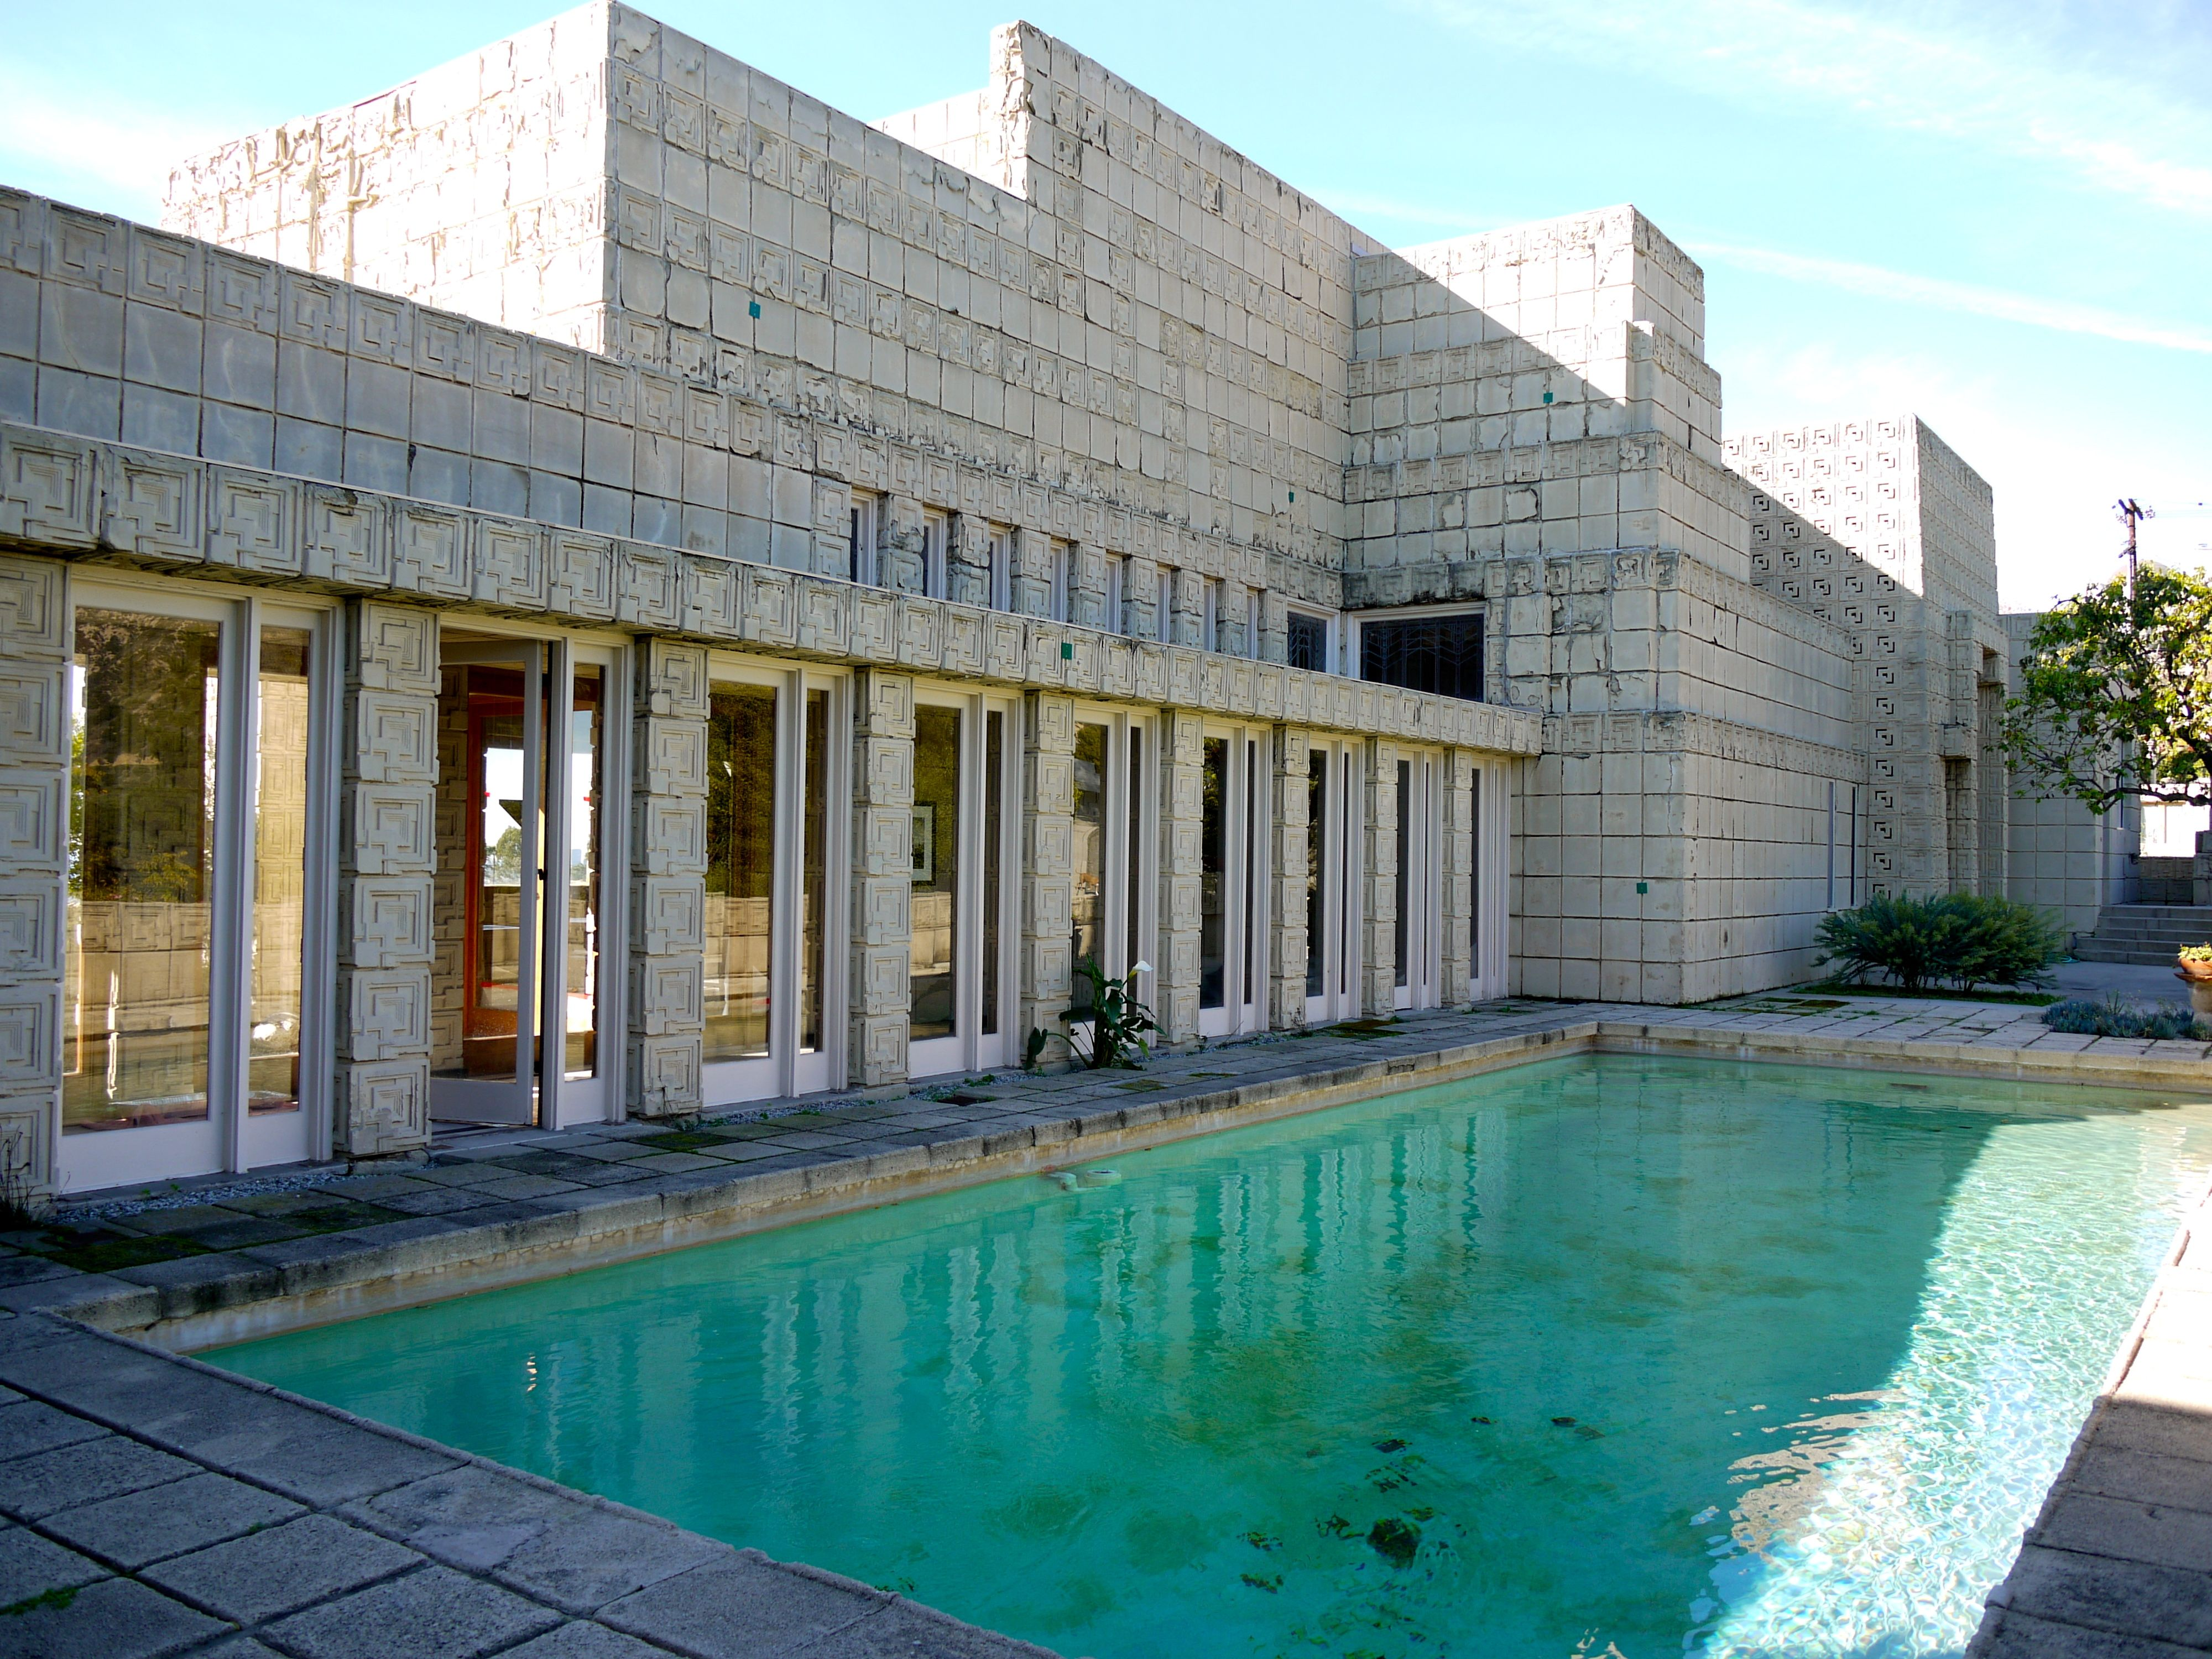 Best Kitchen Gallery: Frank Lloyd Wright's Ennis House In The Los Feliz Neighborhood Of of Modern Houses In Los Angeles on rachelxblog.com